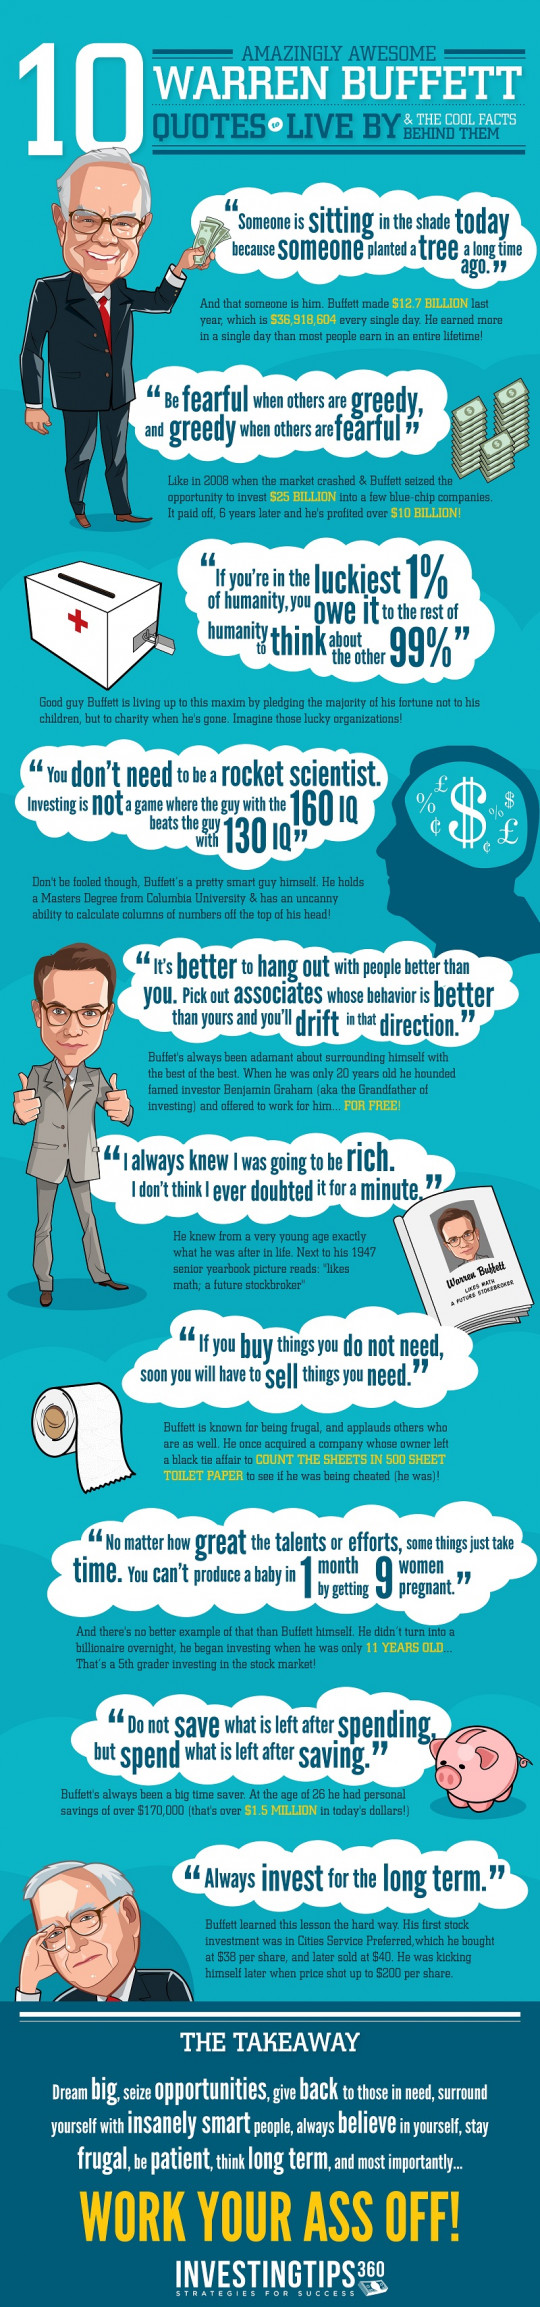 10 Amazingly Awesome Warren Buffett Quotes to Live By...& The Cool Facts Behind Them